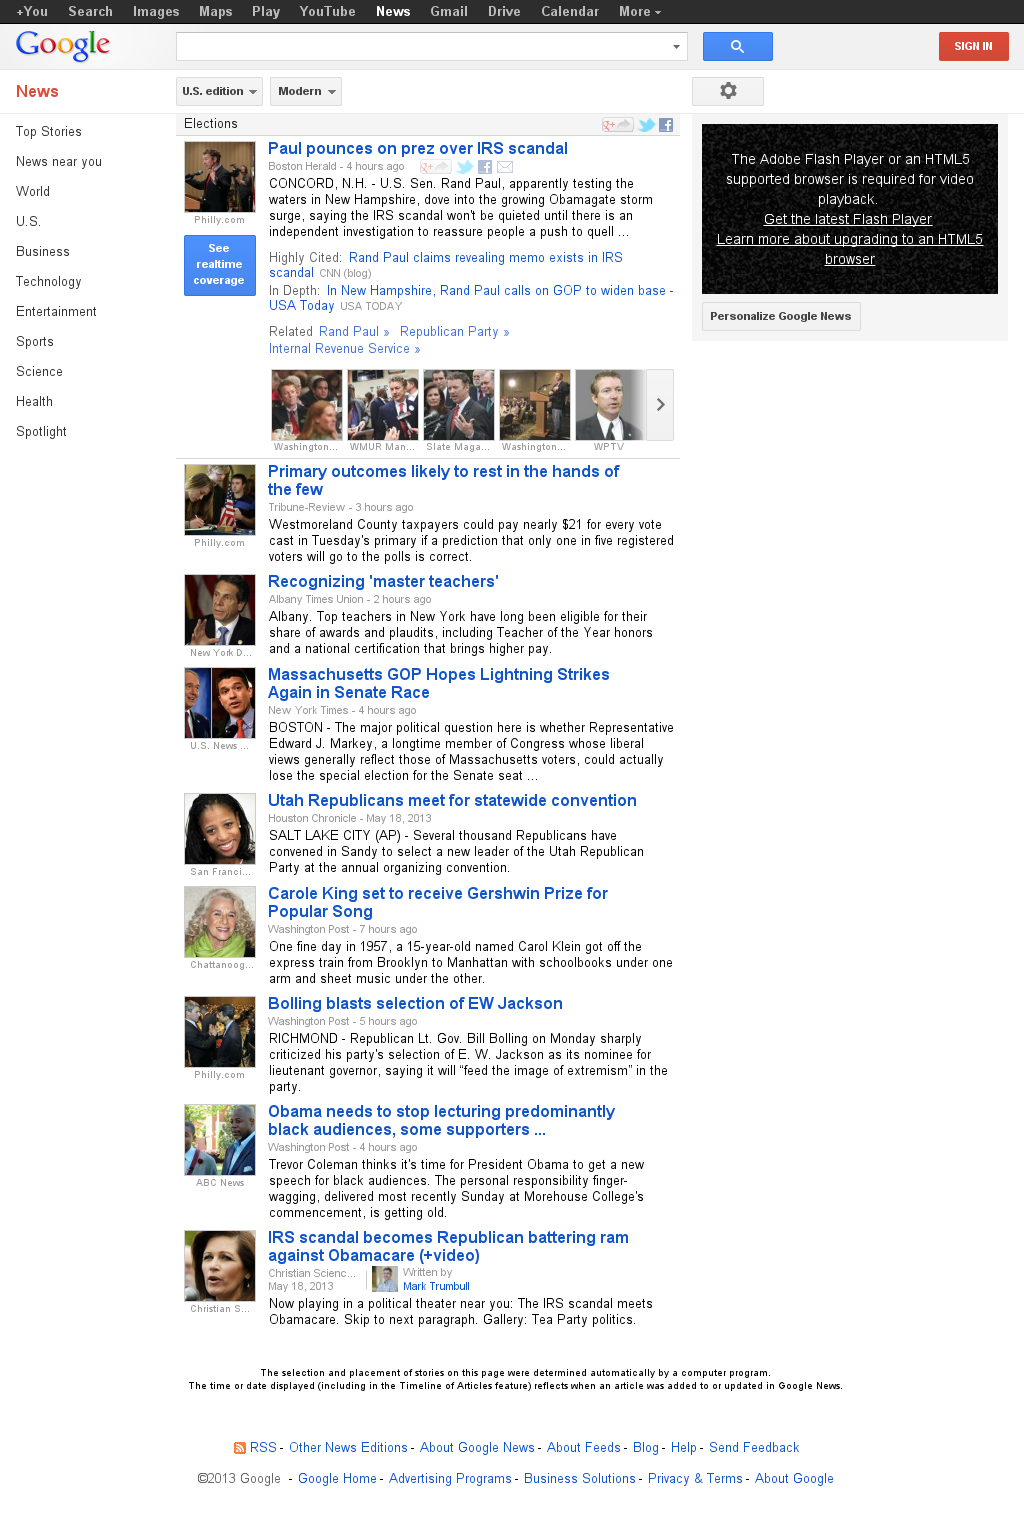 Google News: Elections at Tuesday May 21, 2013, 8:07 a.m. UTC